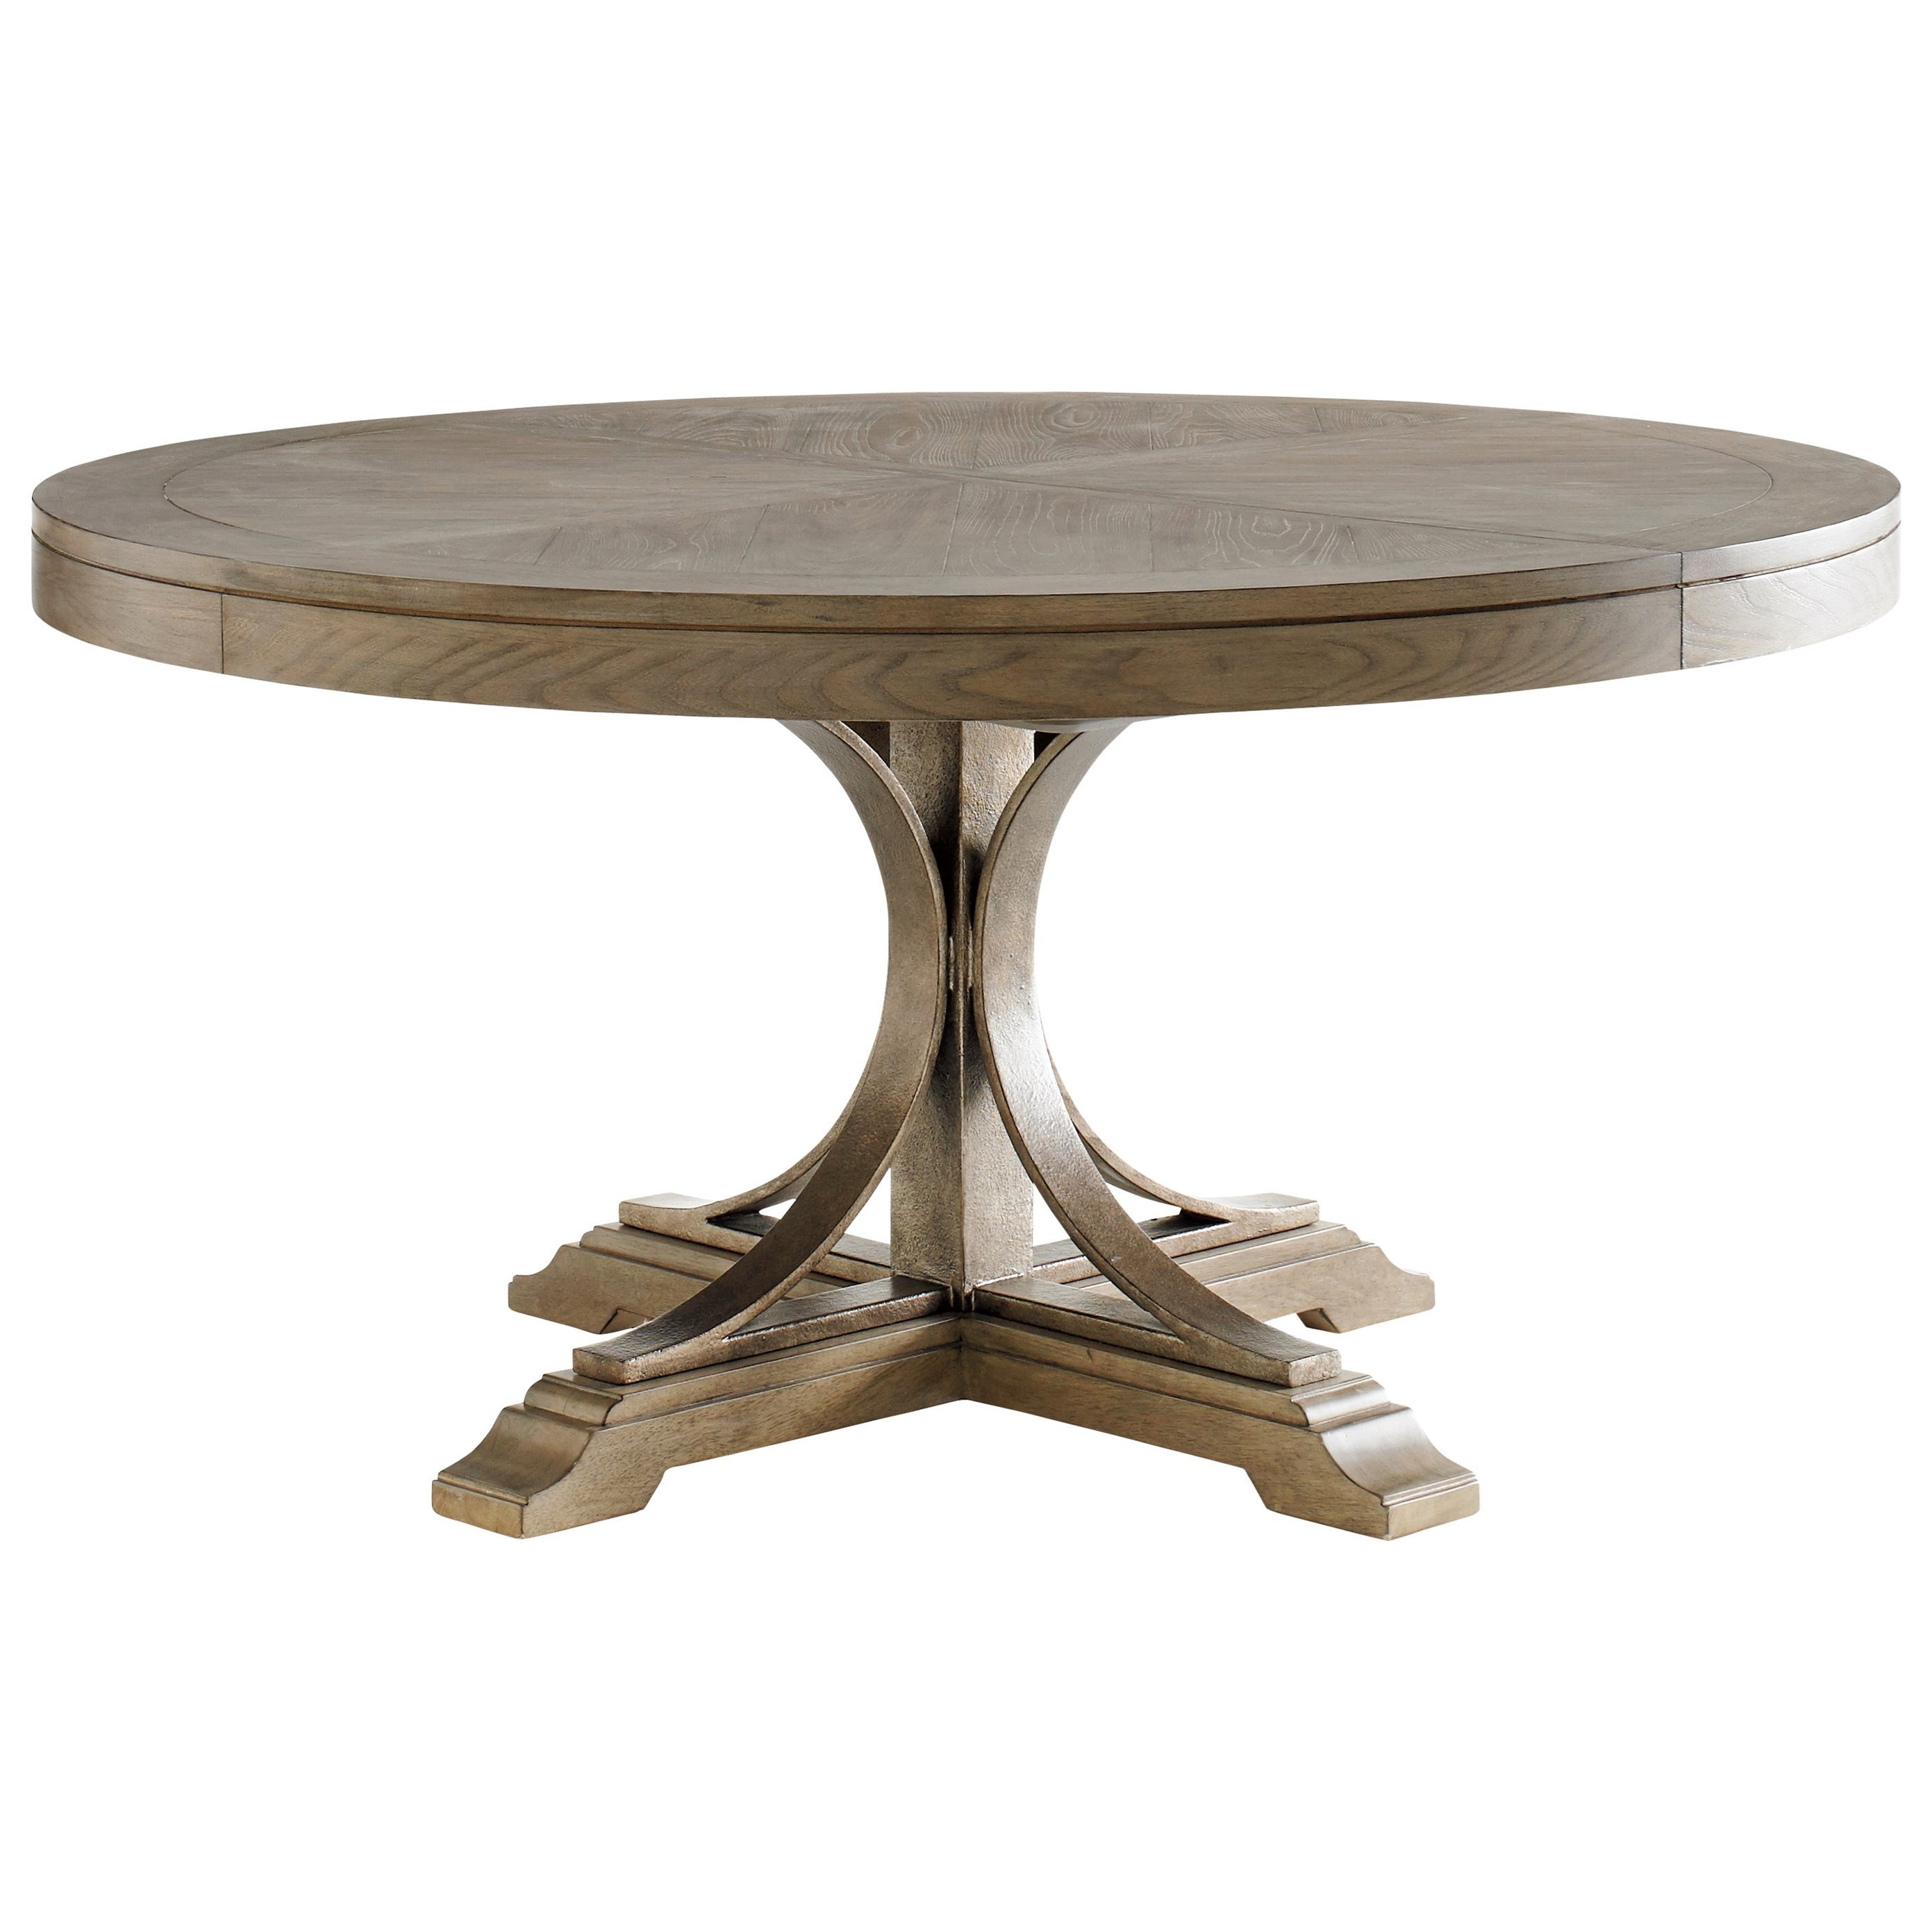 Tommy Bahama Home Cypress Point Atwell Round Dining Table - Item Number: 561-875C